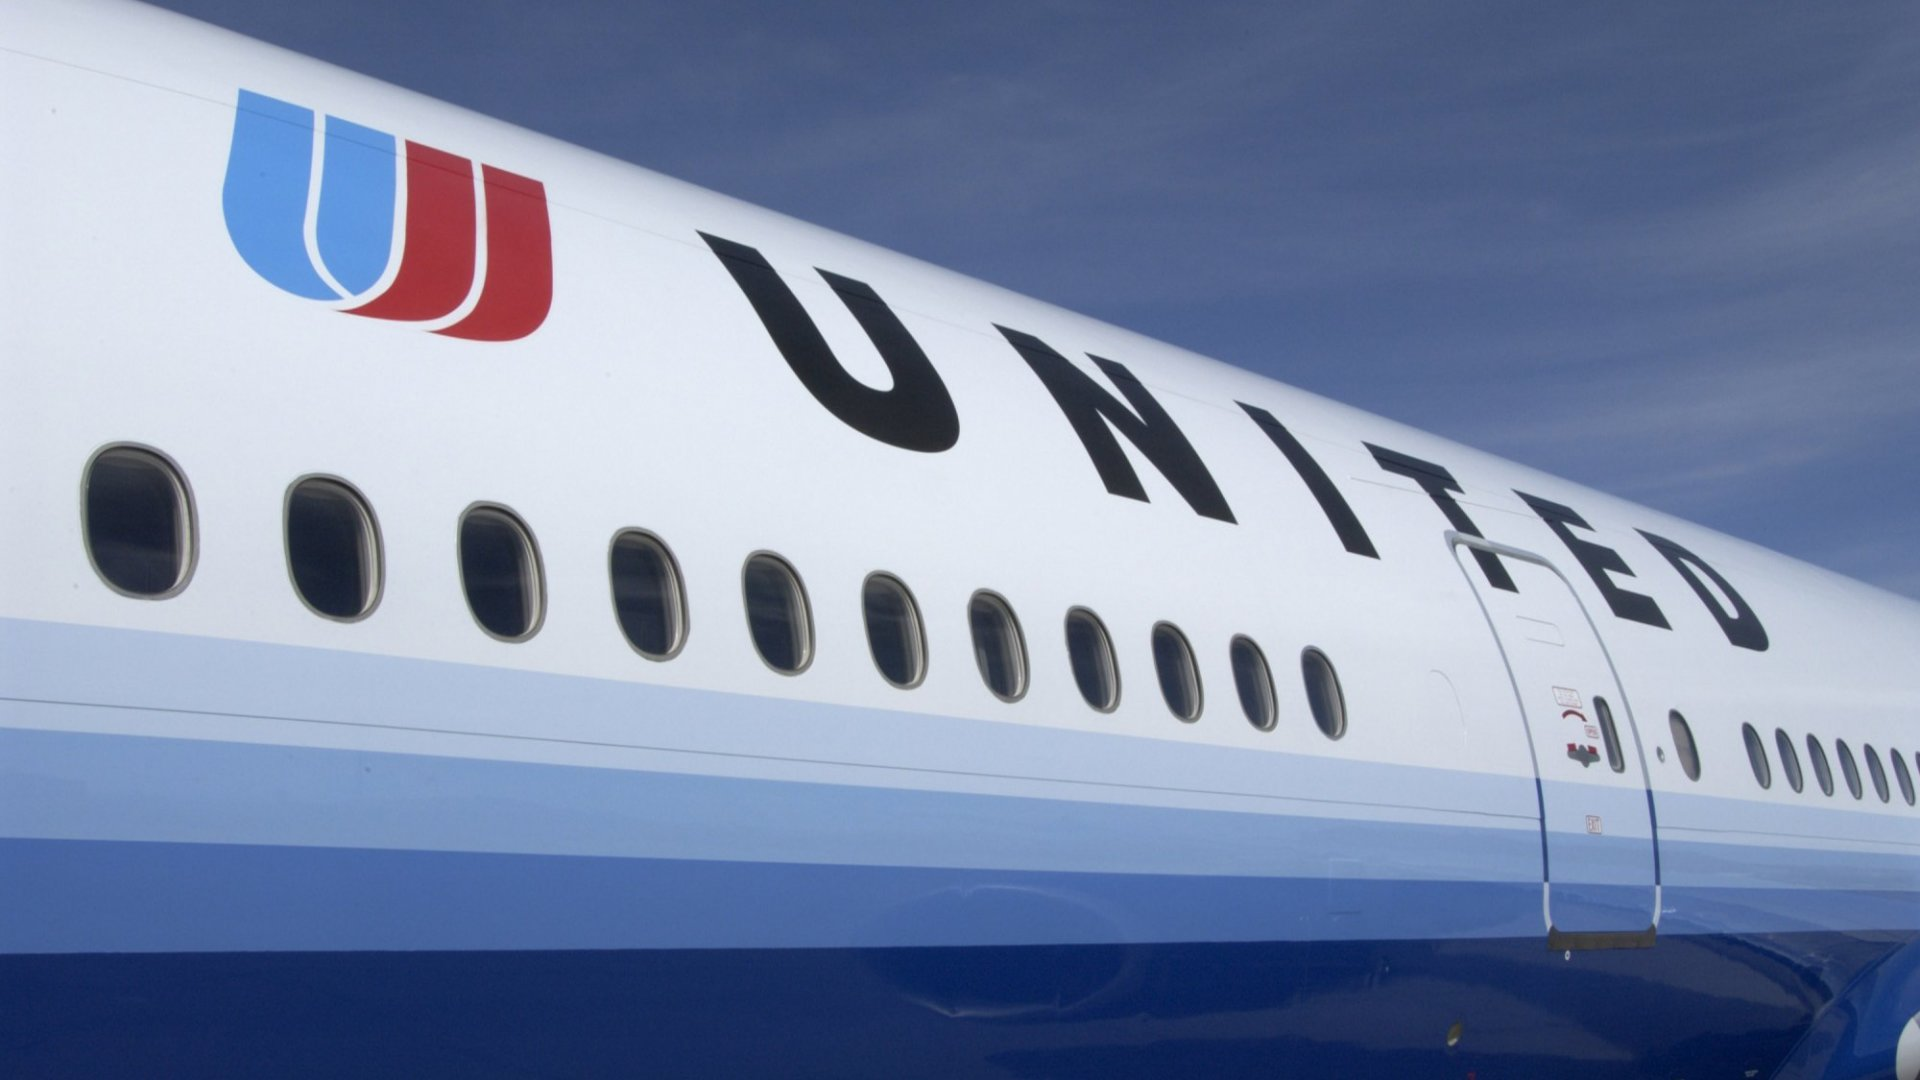 With 4 Short Words, United Airlines Just Announced a Shocking New Change (but Will It Really Happen?)